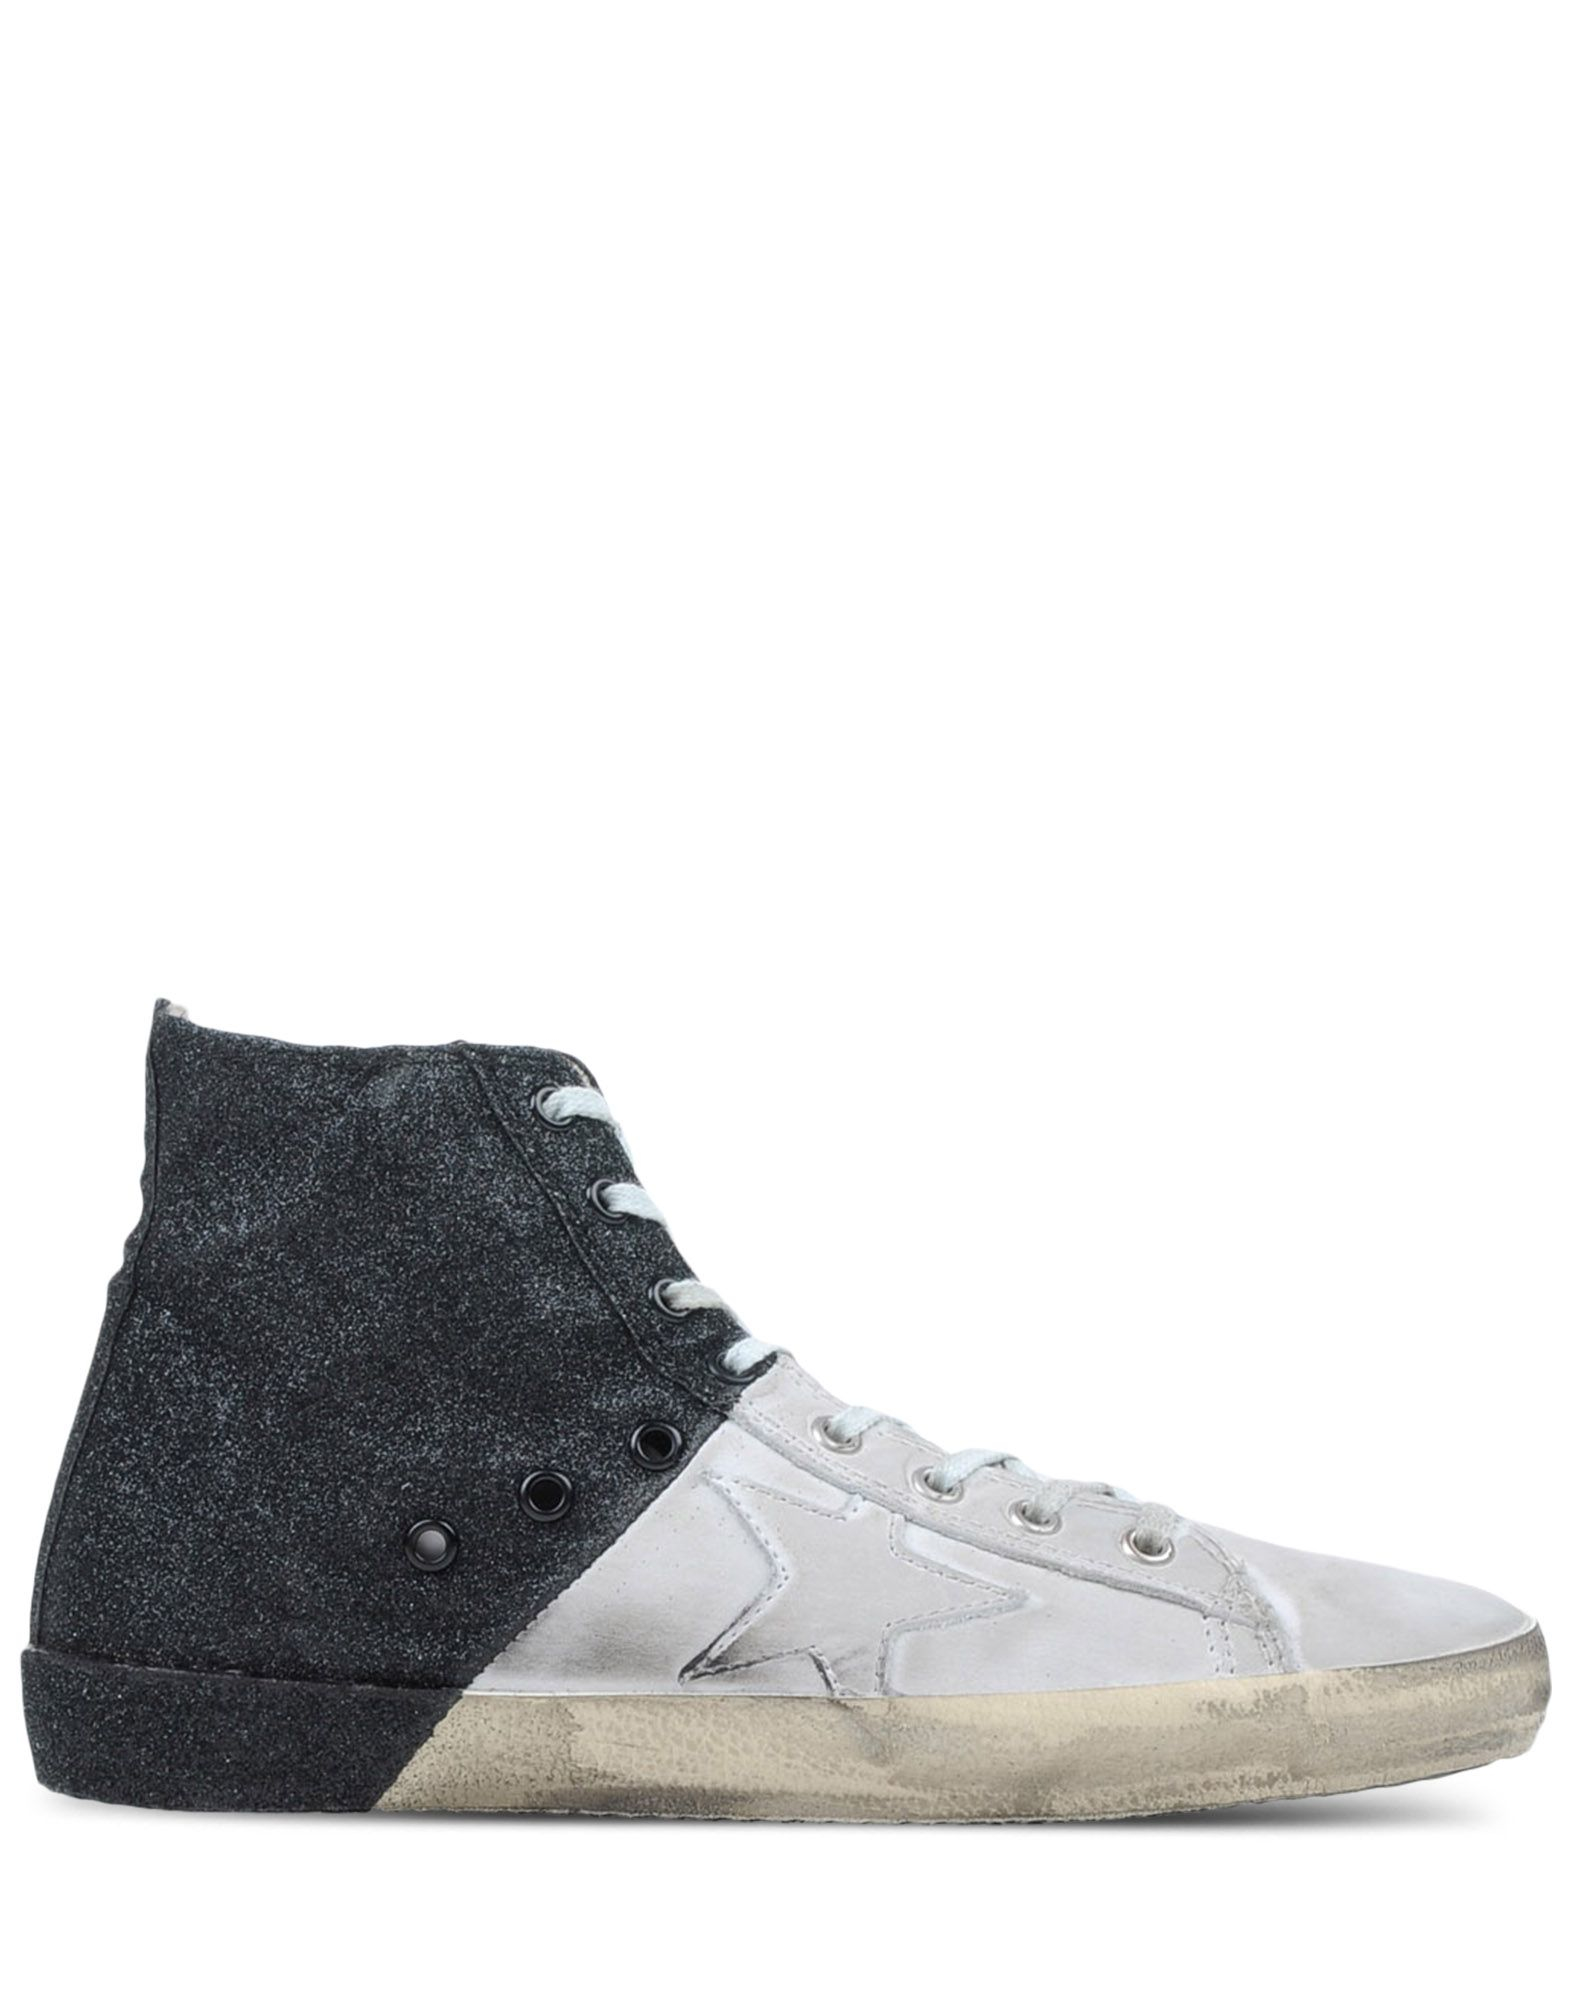 golden goose deluxe brand francy two toned glitter high top sneakers in gray for men white lyst. Black Bedroom Furniture Sets. Home Design Ideas